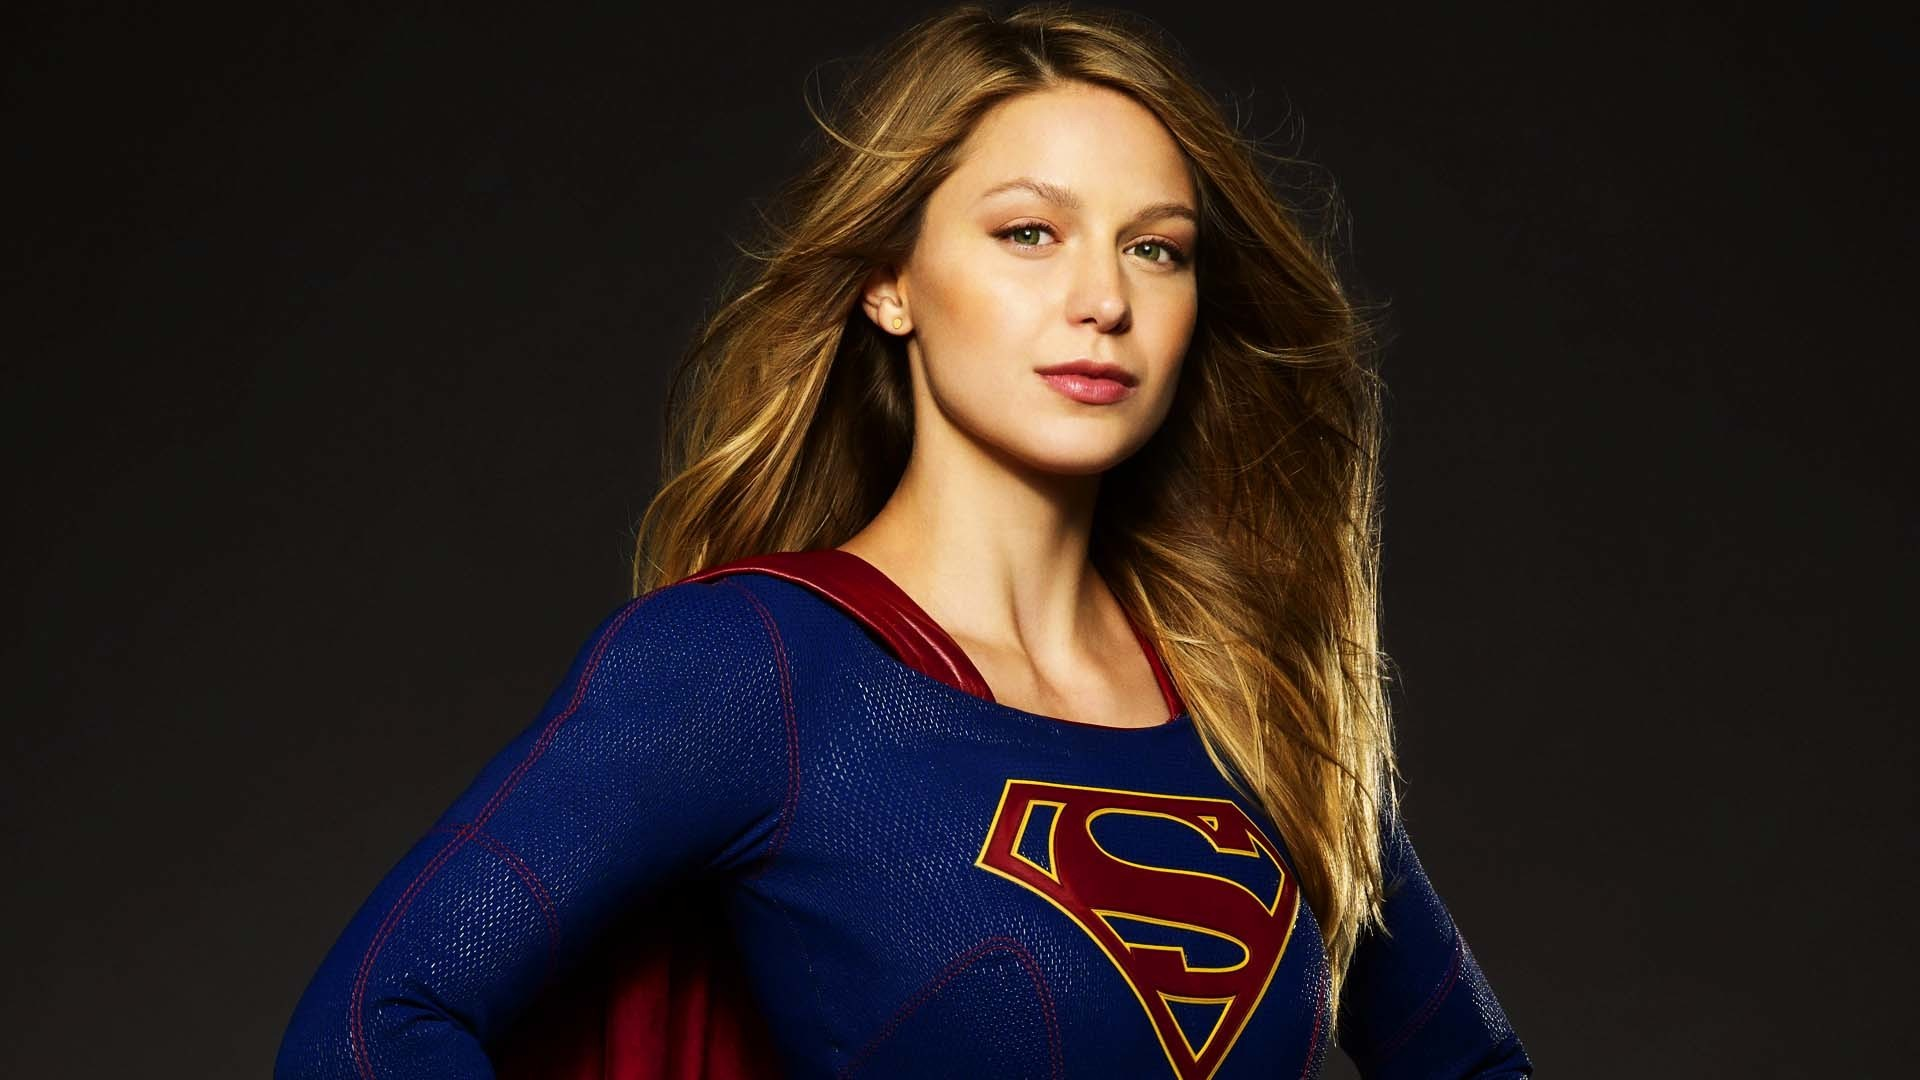 Pinterest Girls Wallpaper Fondos Serie Supergirl Wallpapers Gratis